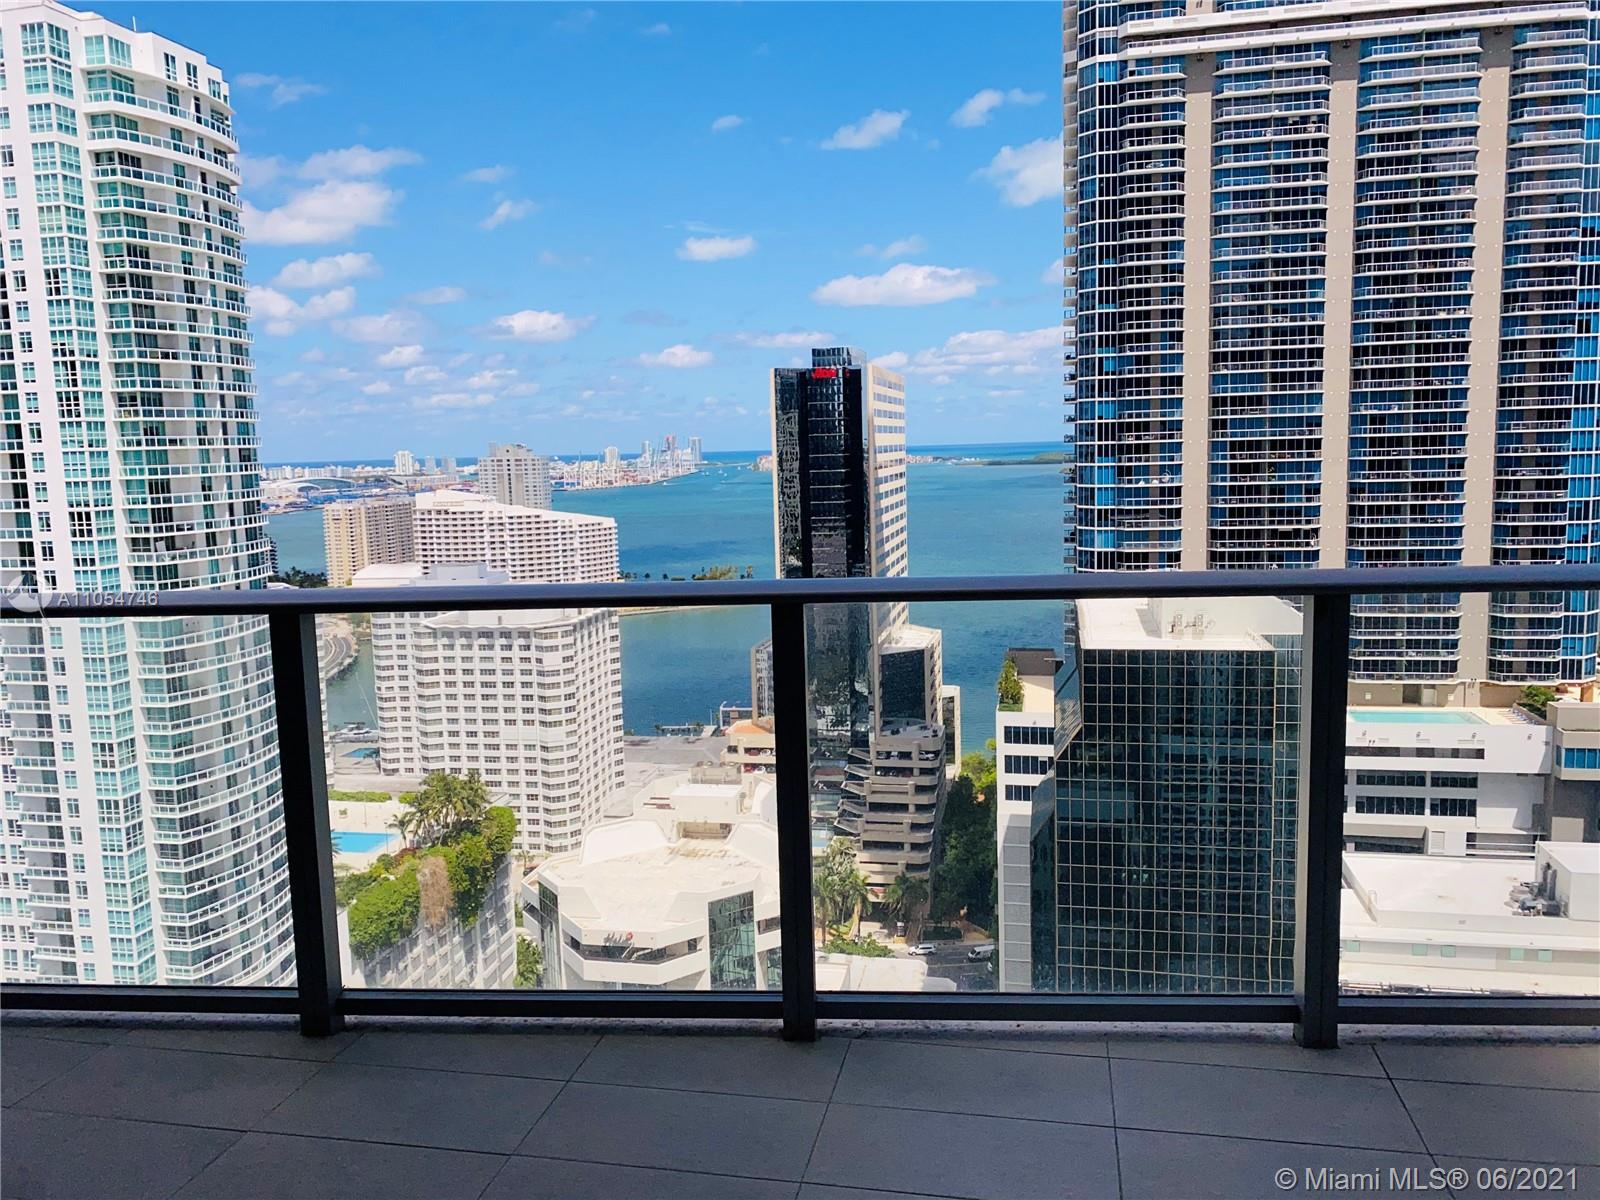 Brickell 1010, the New Luxury Urban Living with spectacular amenities for adults & children! Exquisite, 3bd + Den 3bth residence in the sky! 180 degrees of Bay, Ocean & gorgeous City skyscraper views!!! Private elevator, modern designer finishes & upgrades throughout, European kitchen, Floor to ceiling windows throughout. Large balcony w electric BBQ. Building offers incomparable amenities, 2 pools (Heated & Rooftop), Basketball, Squash, Arcade, Jogging Track, Gym, Spa, Social Room, Movie Theater, Business Center.